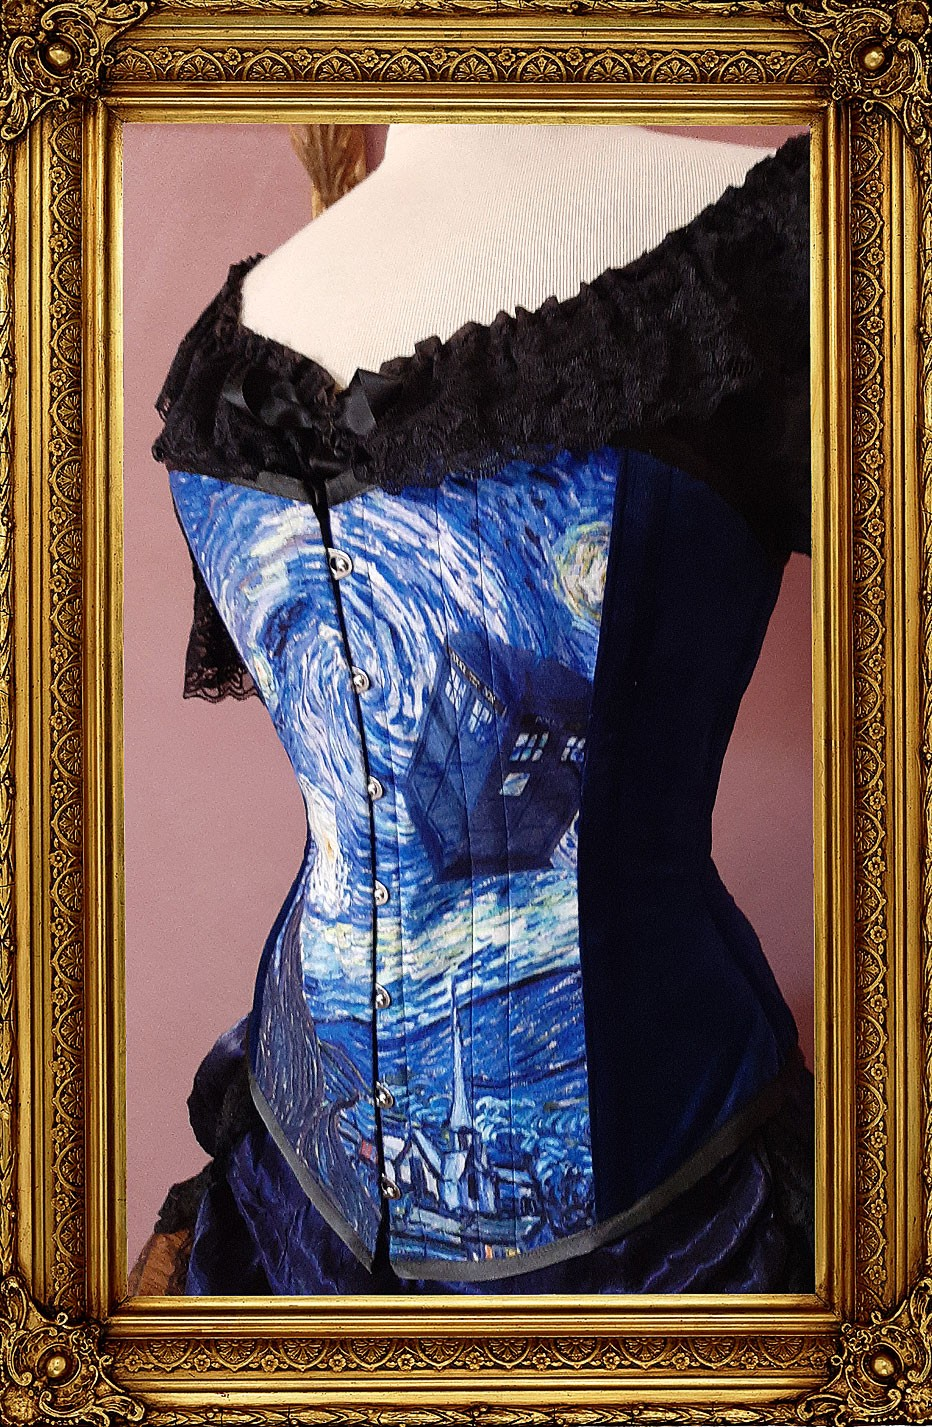 starry night van gogh and blue police box Tardis custom digital print over bust corset at Gallery Serpentine